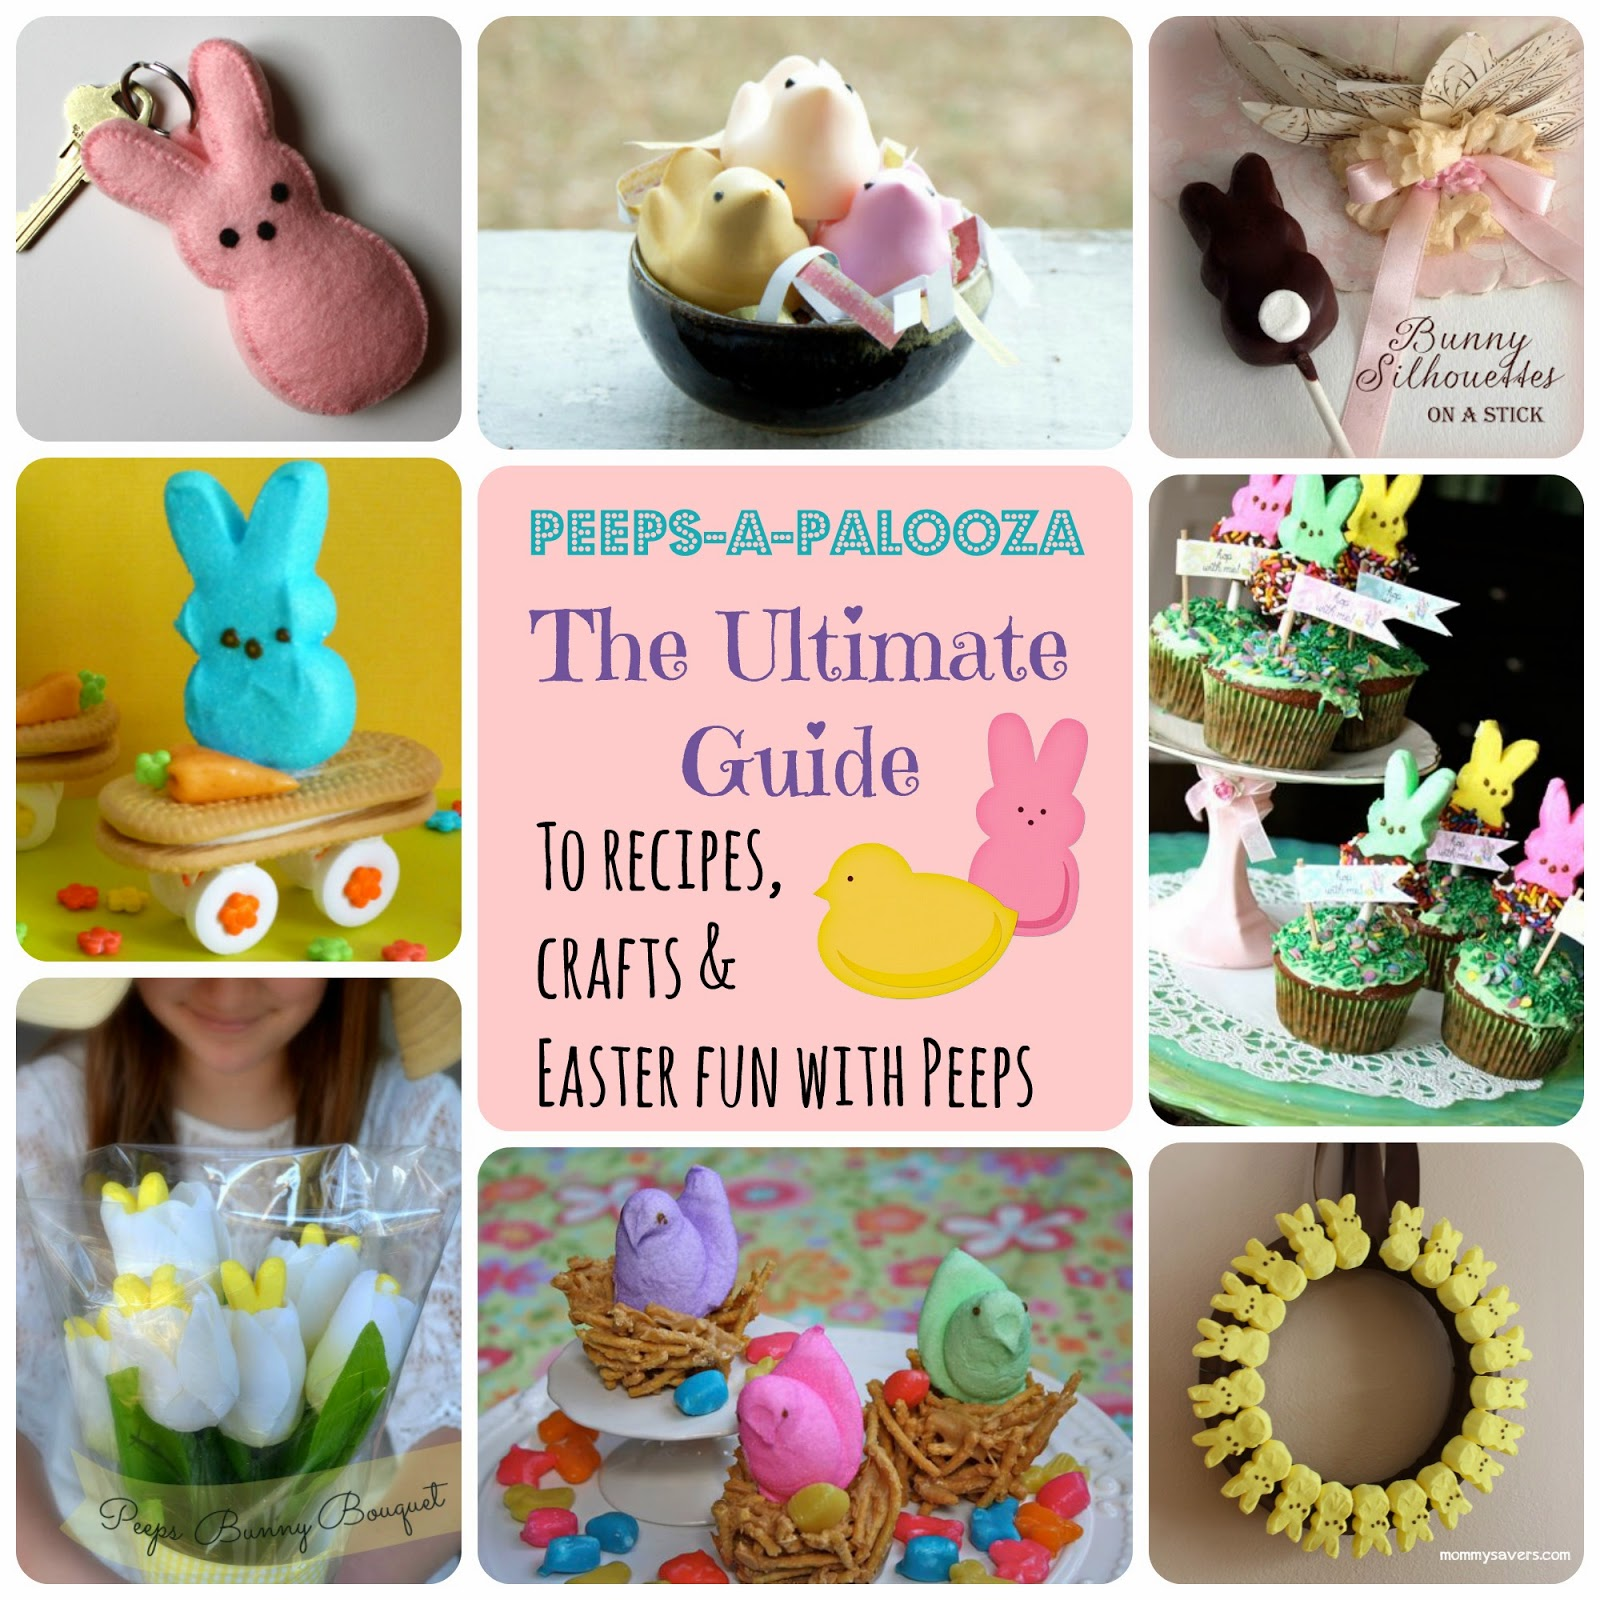 http://3.bp.blogspot.com/-ym_TsRHkcpc/Uy3sjjrolyI/AAAAAAAAZ4g/-oW0XpnnOD4/s1600/the+ultimate+guide+to+recipes+crafts+and+easter+fun+with+peeps+marshmallow.jpg